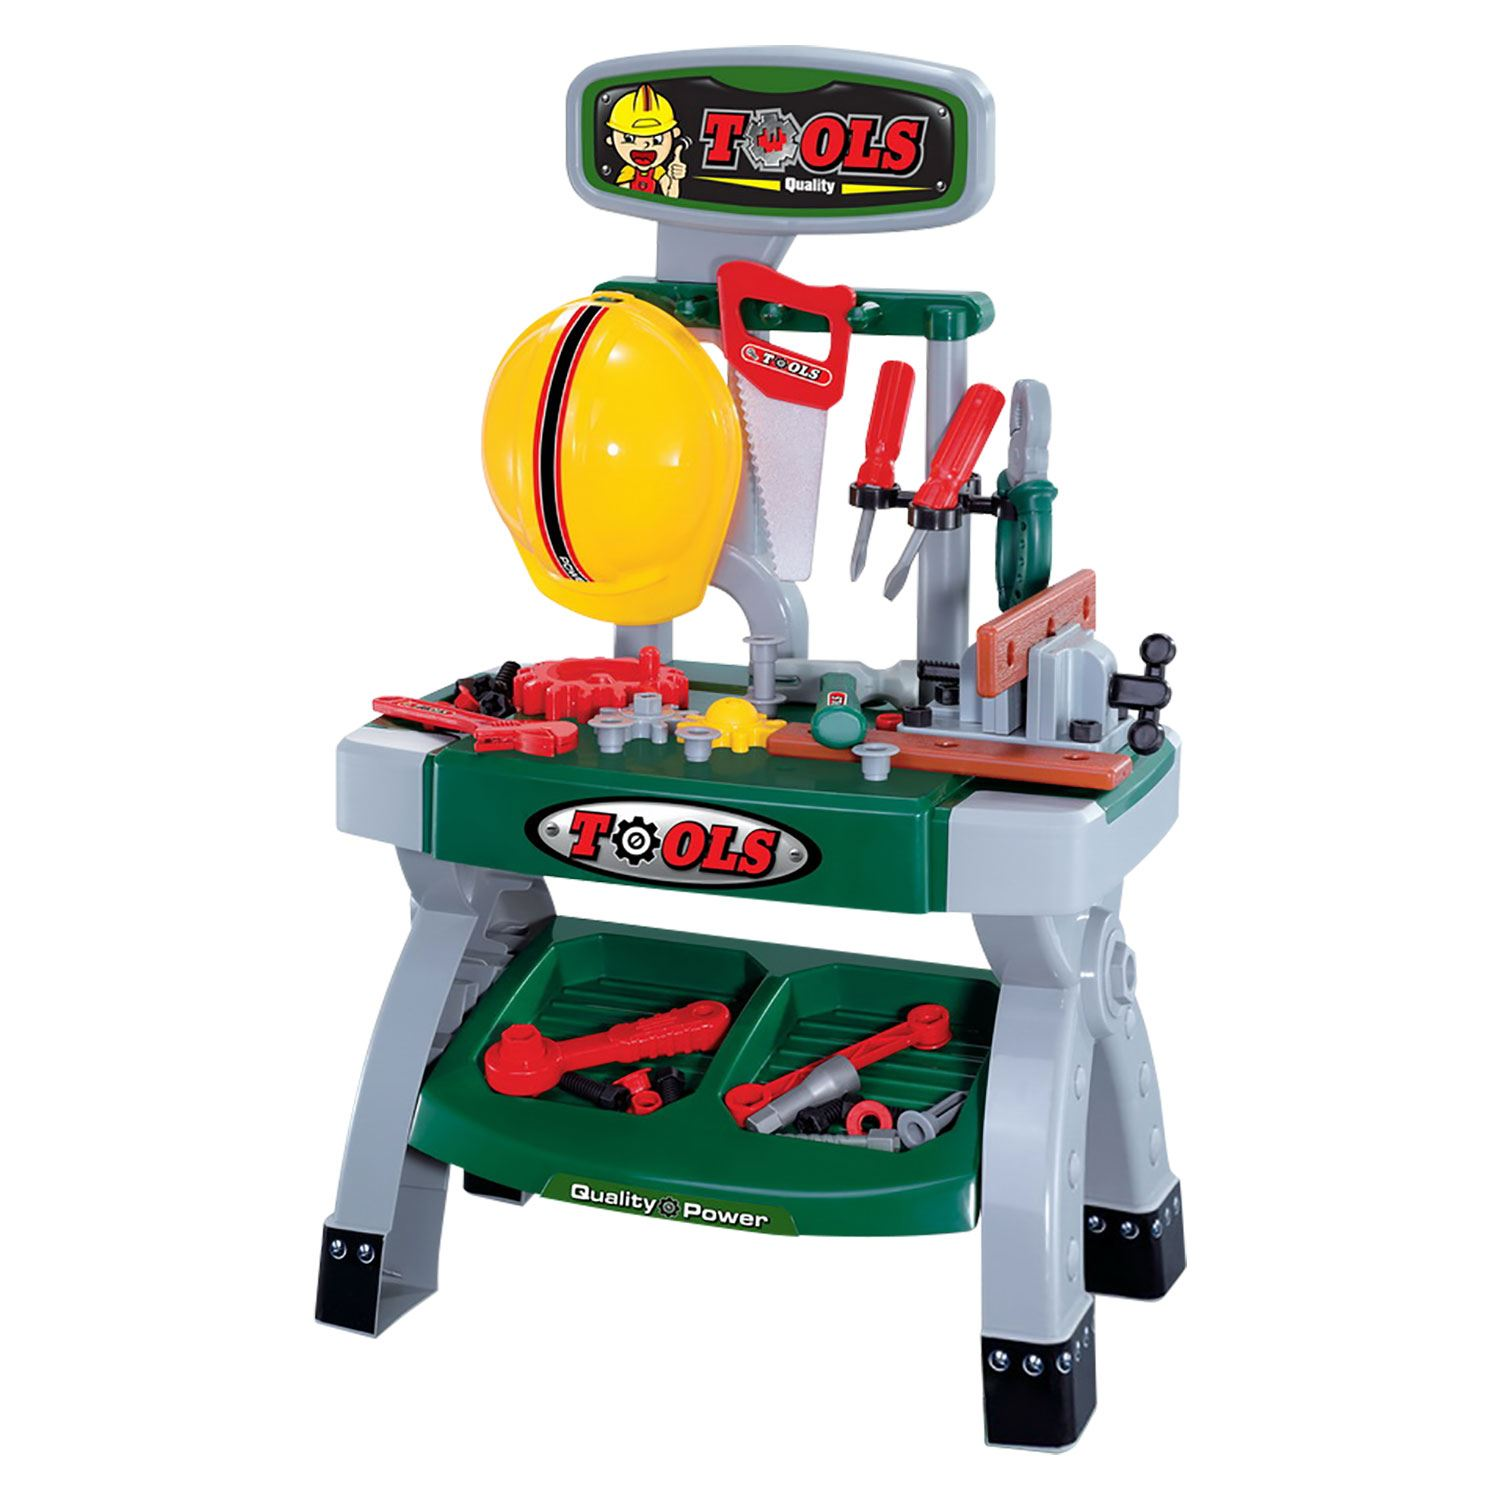 Toy Tools For Boys : Boys girls childrens kids kitchen play set pretend toy